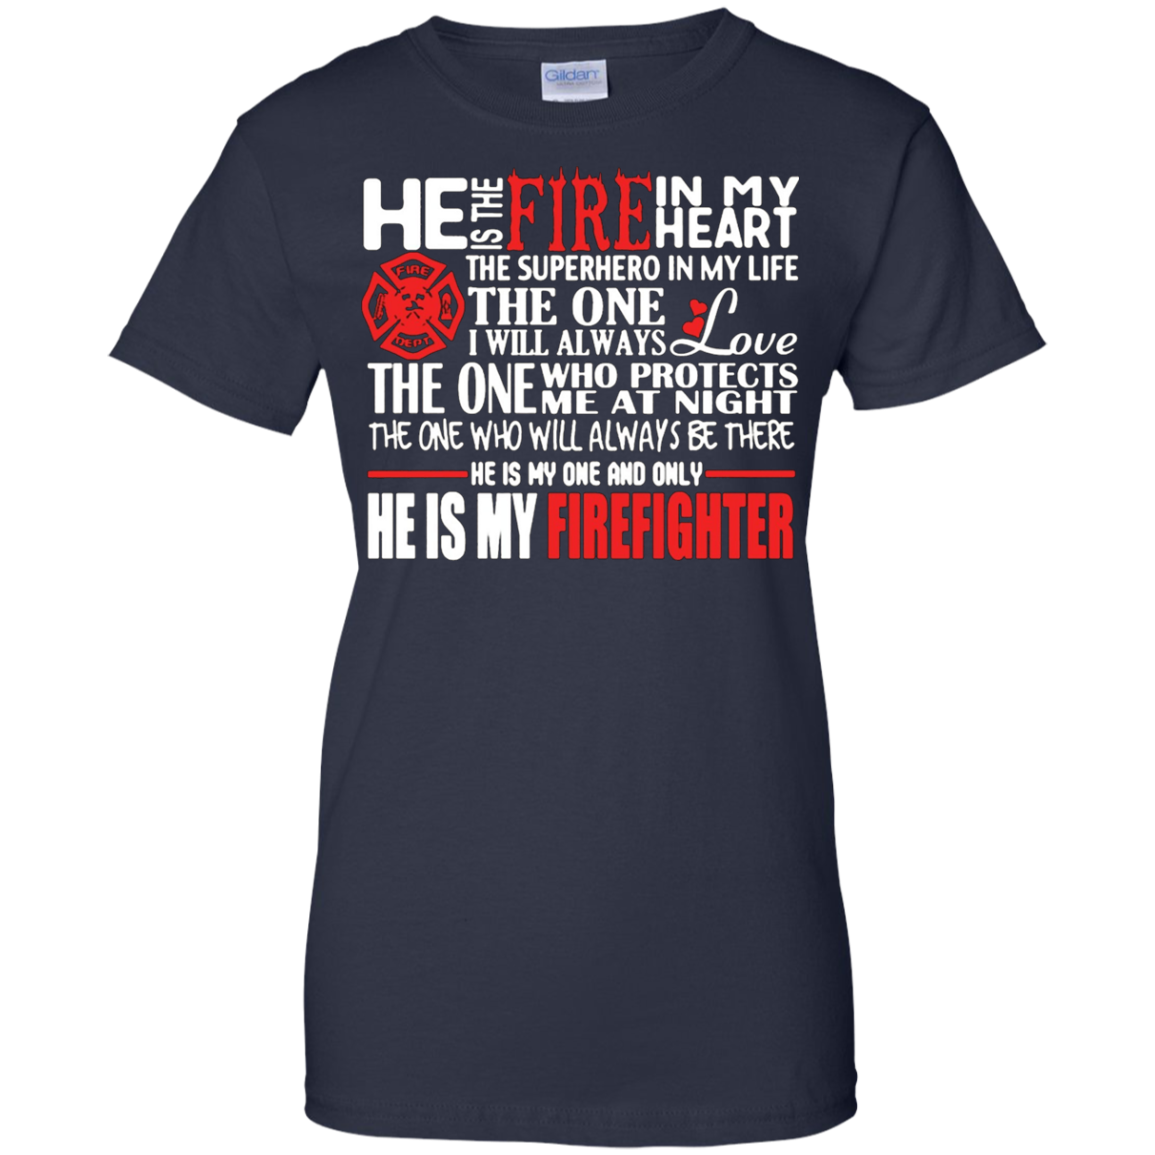 Firefighter He Is The Fire In My Heart T shirt